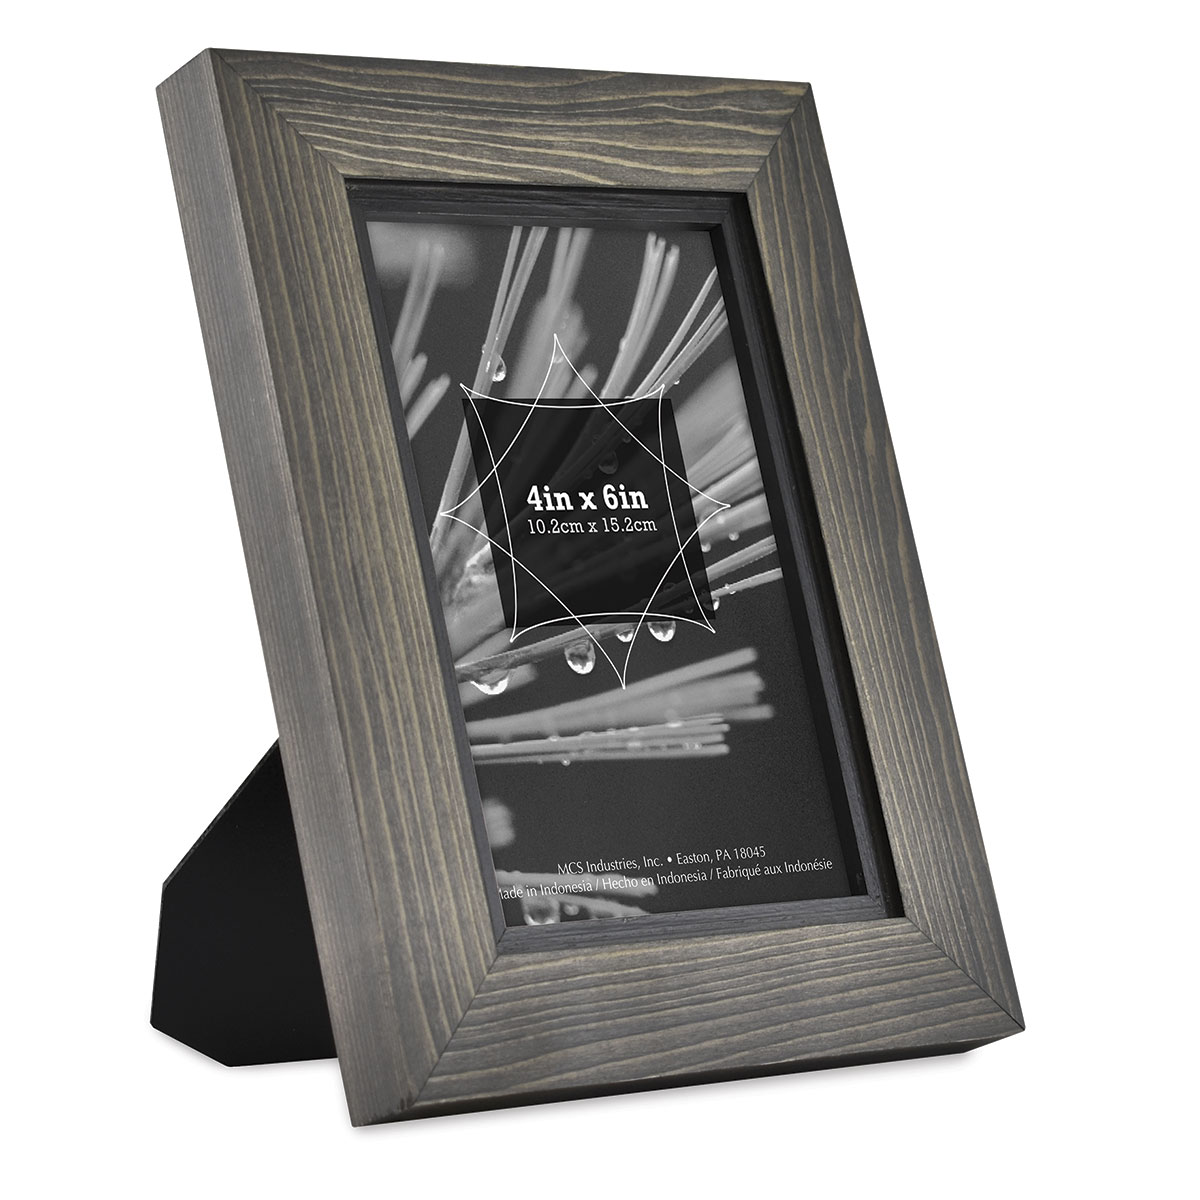 4 by 6-Inch MCS Solid Wood Frame in Gold Leaf Finish